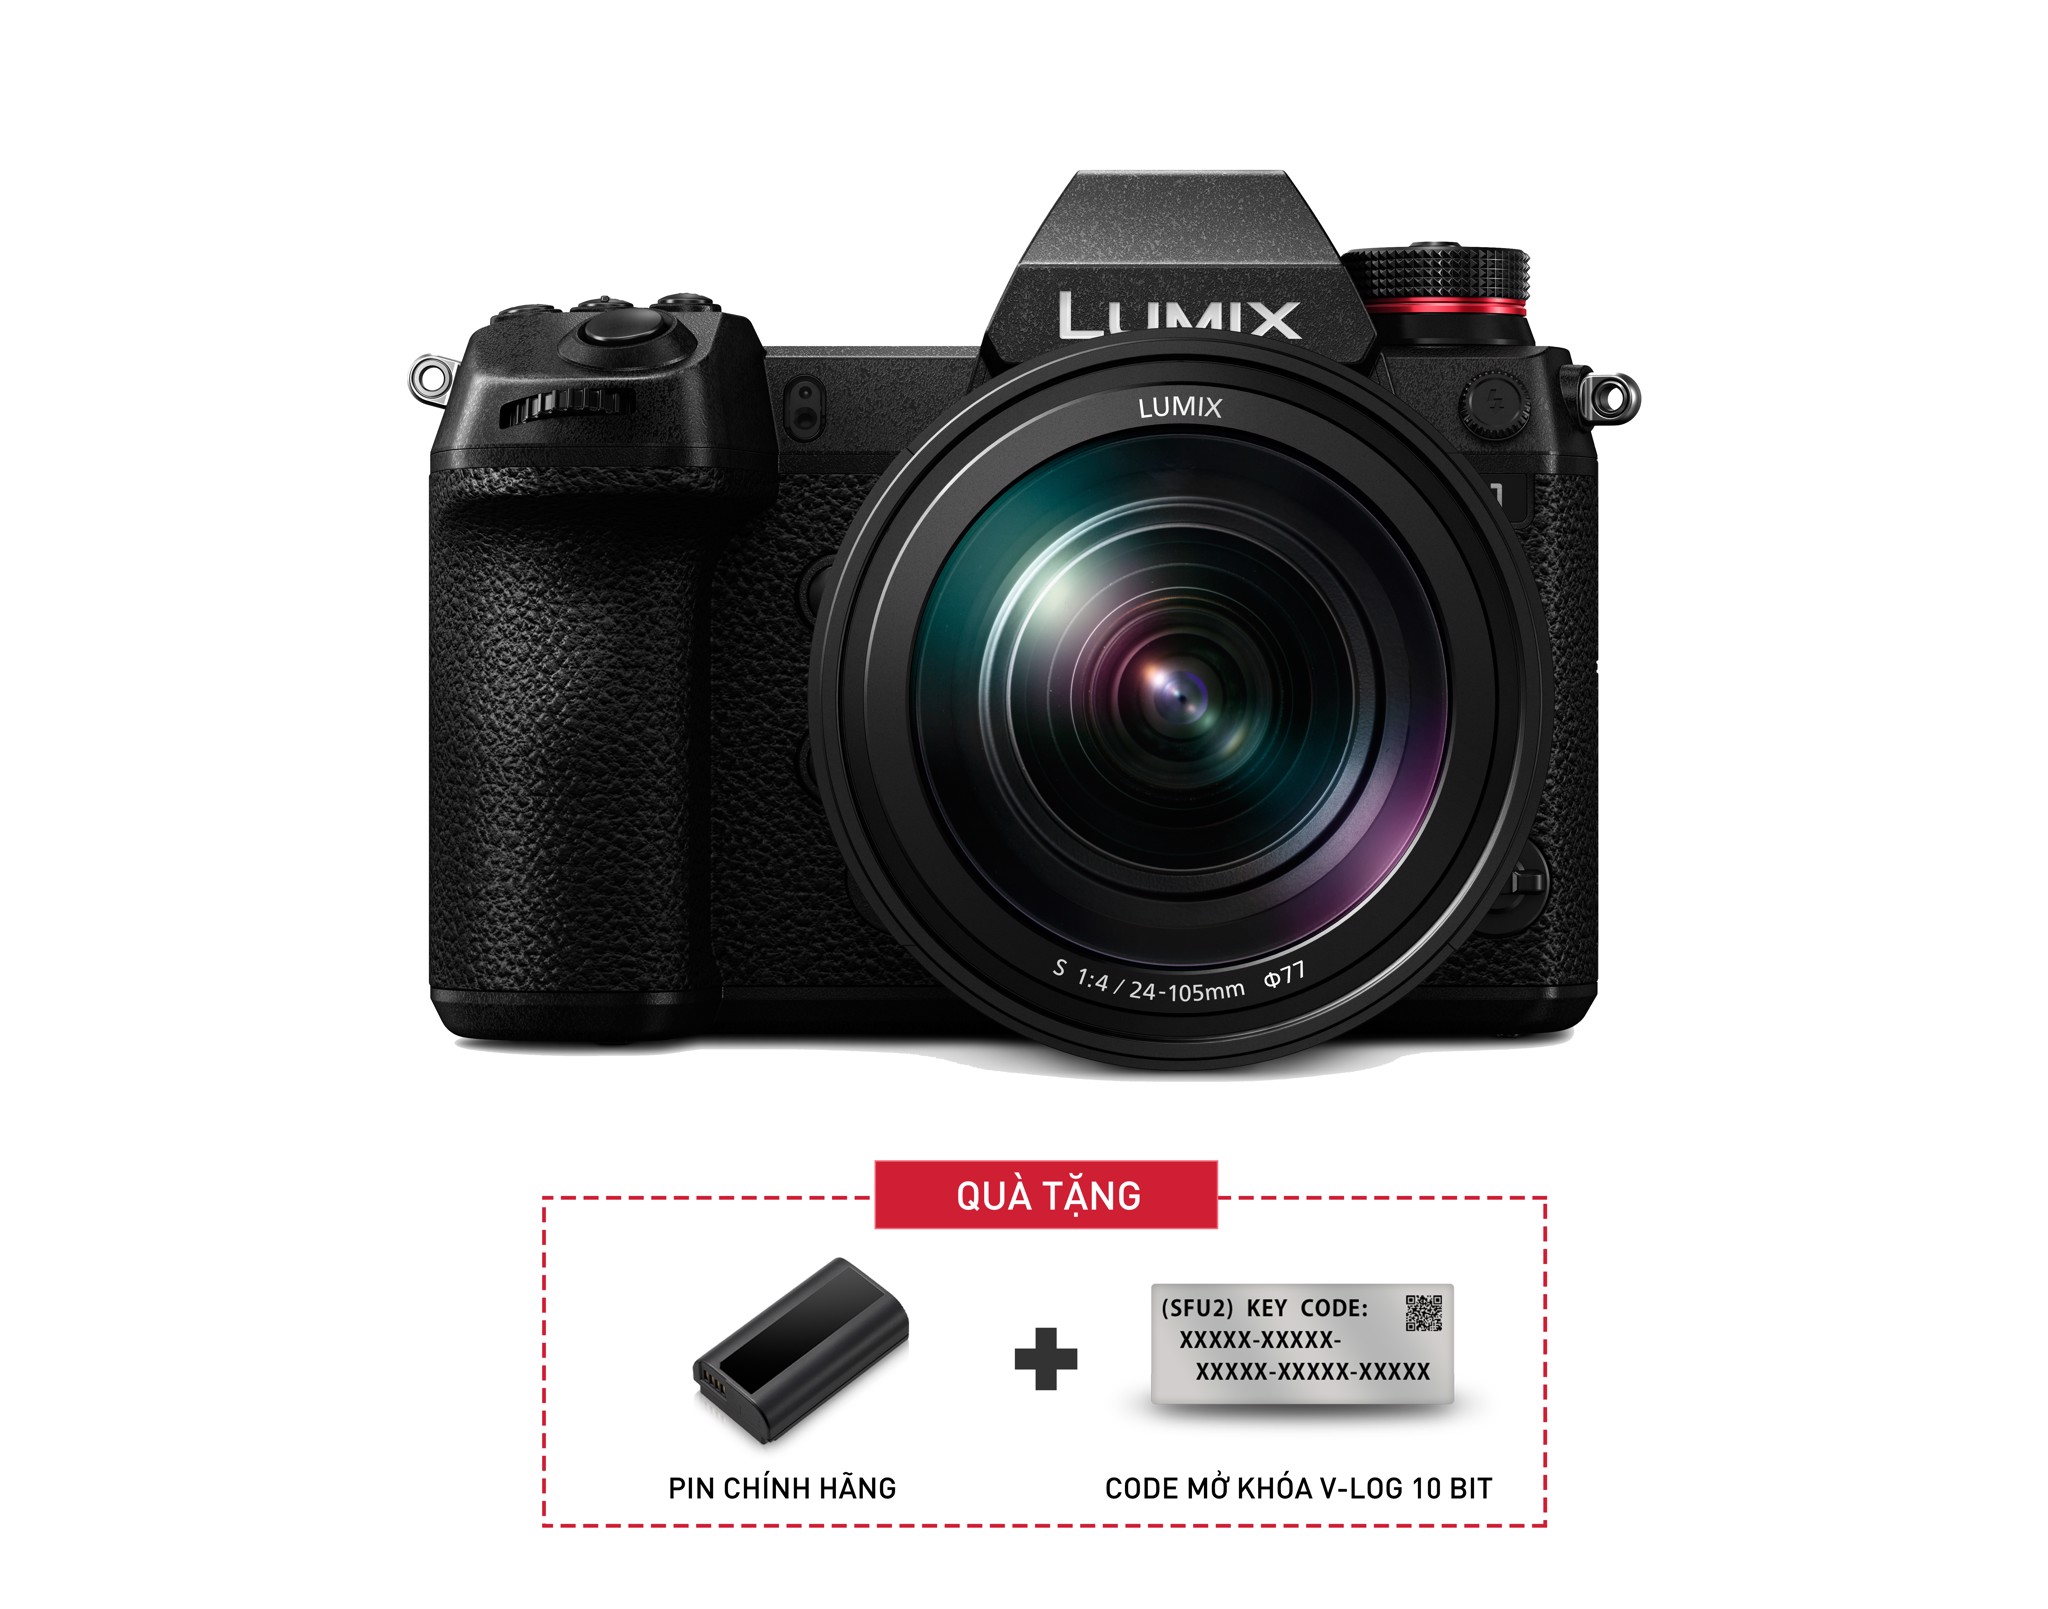 Lumix S1 kit 24-105mm F4